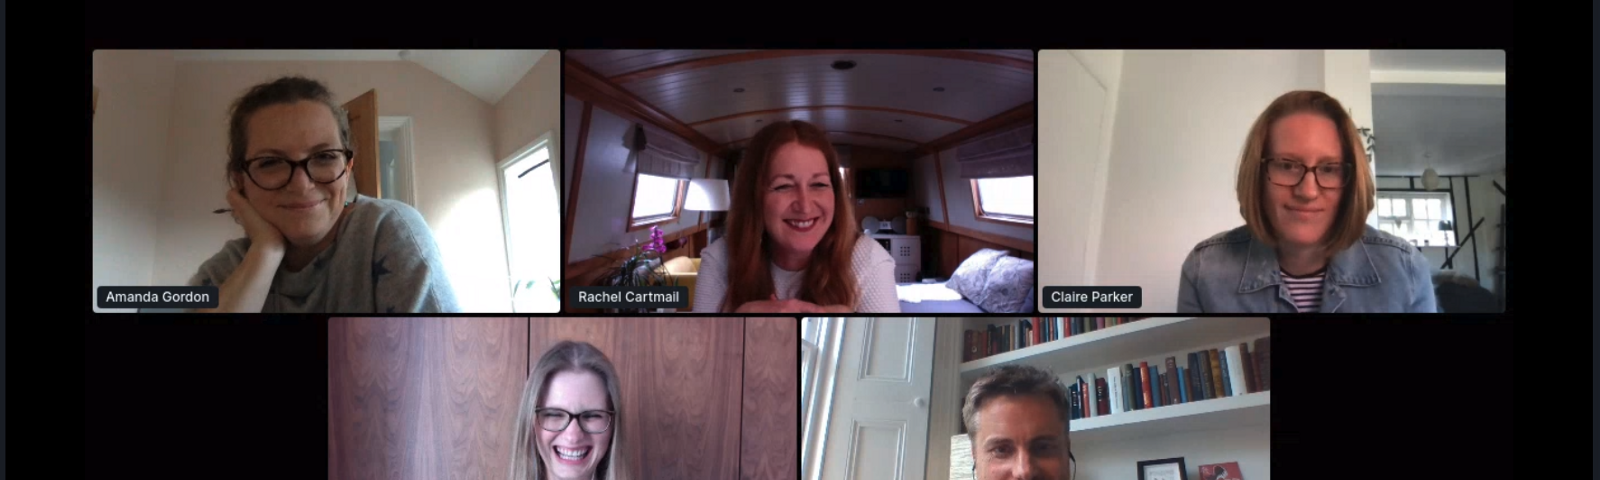 Our 3 panelists and Amanda and I at our virtual event.